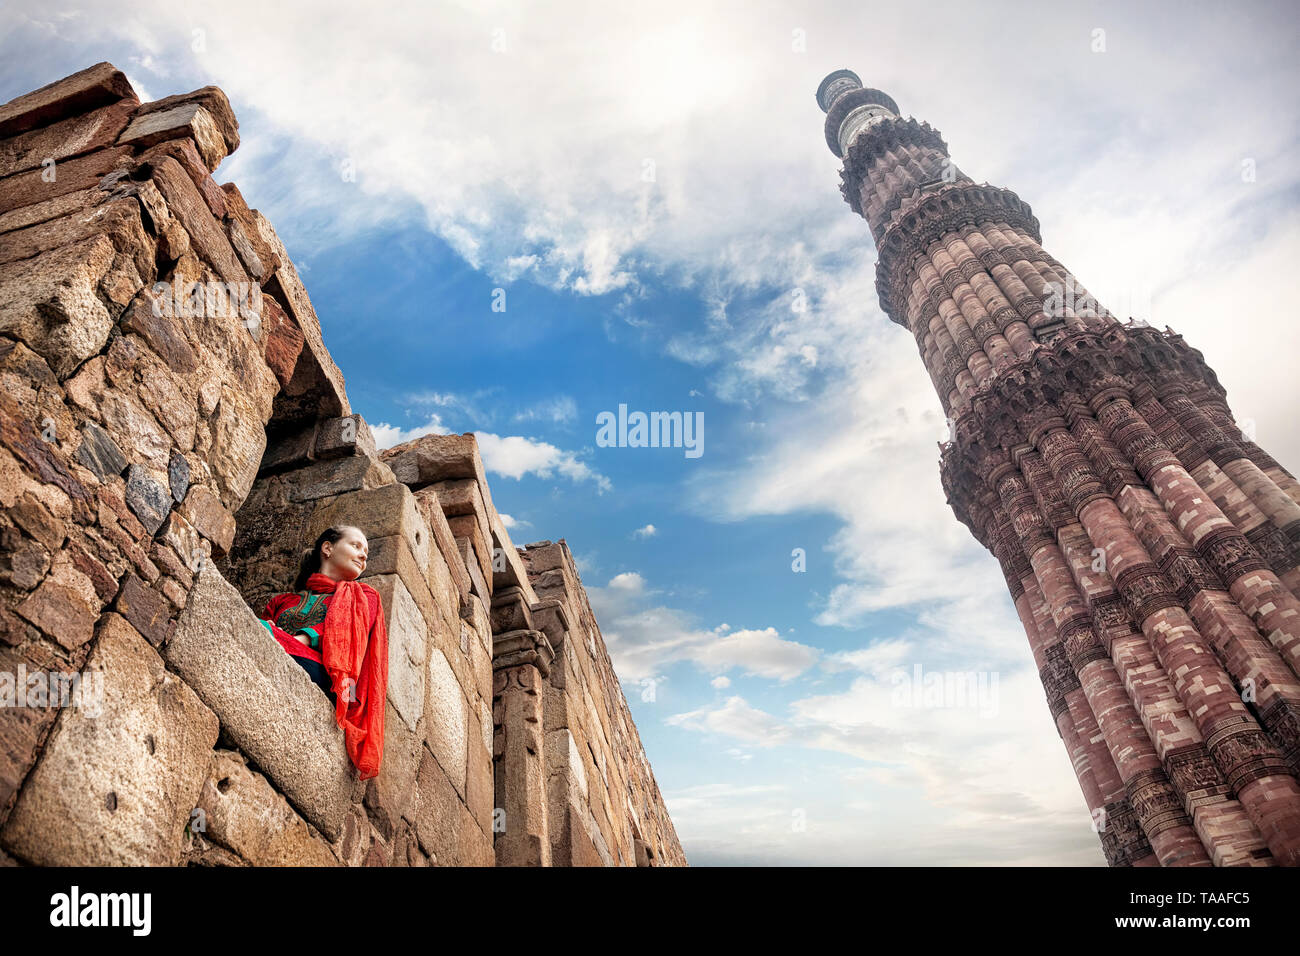 Woman in red costume sitting in the window and looking at Qutub Minar tower in Old Delhi, India - Stock Image